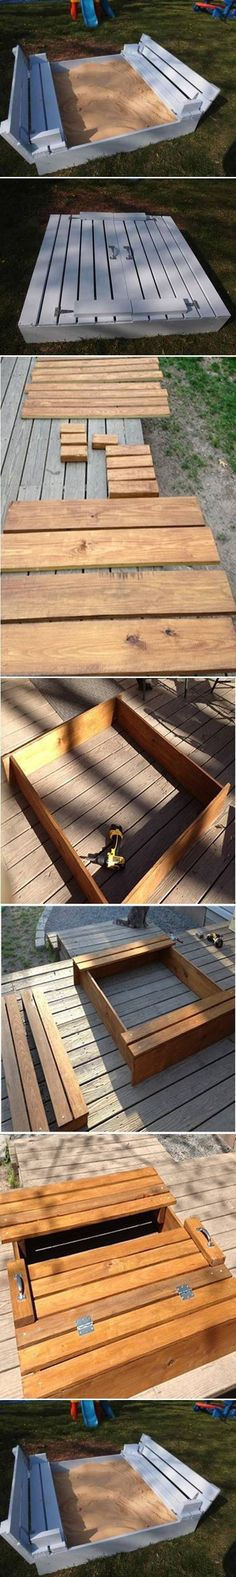 DIY Sandbox converts to benches and keeps out cats! i wanna make it bigger so i can tan in it like im at the beach :P THIS IS SOO CUTE!